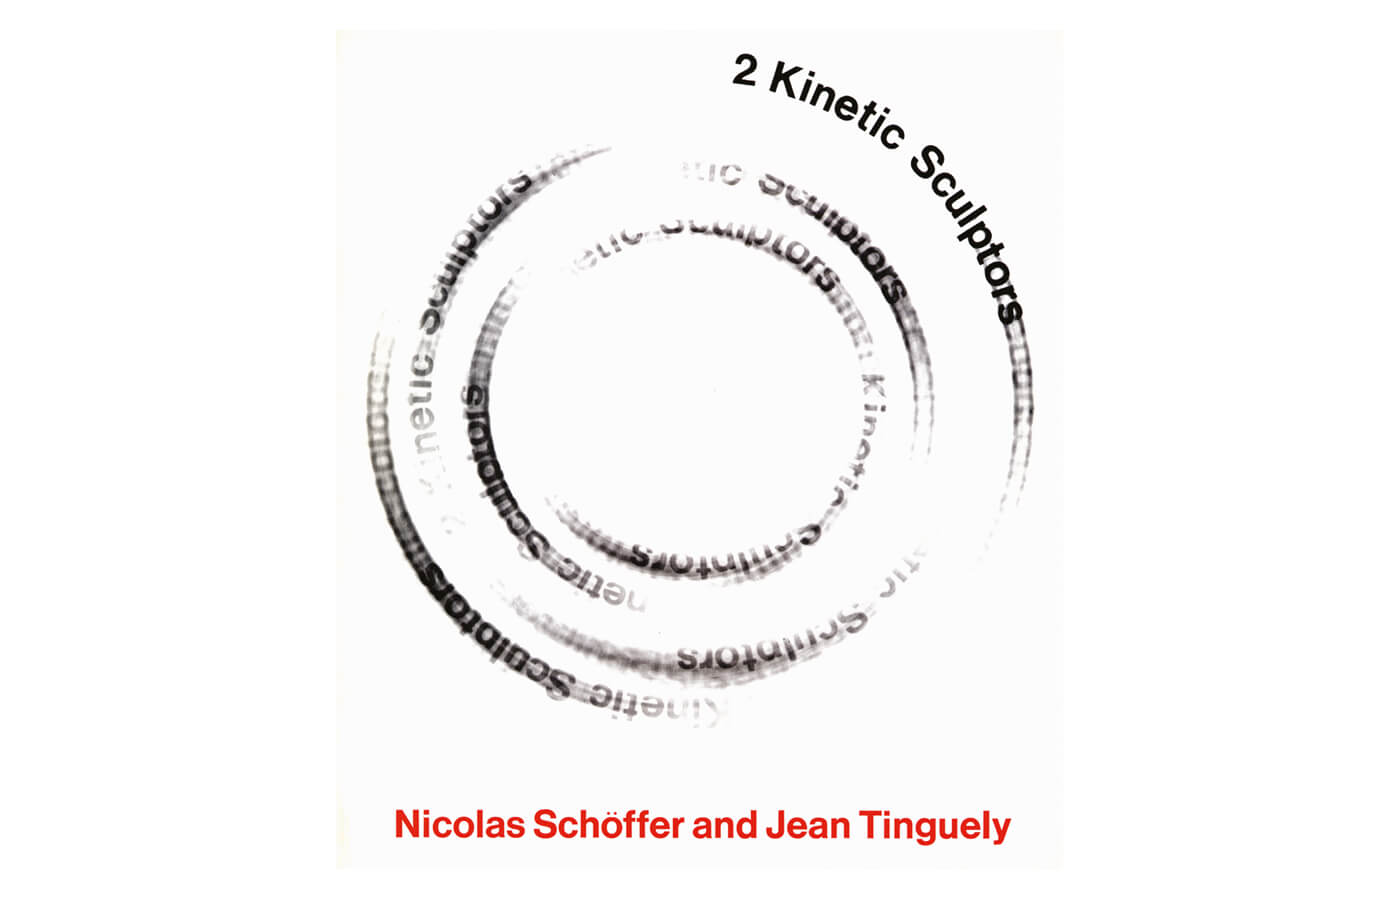 2 Kinetic Sculptors: Nicolas Schöffer and Jean Tinguely